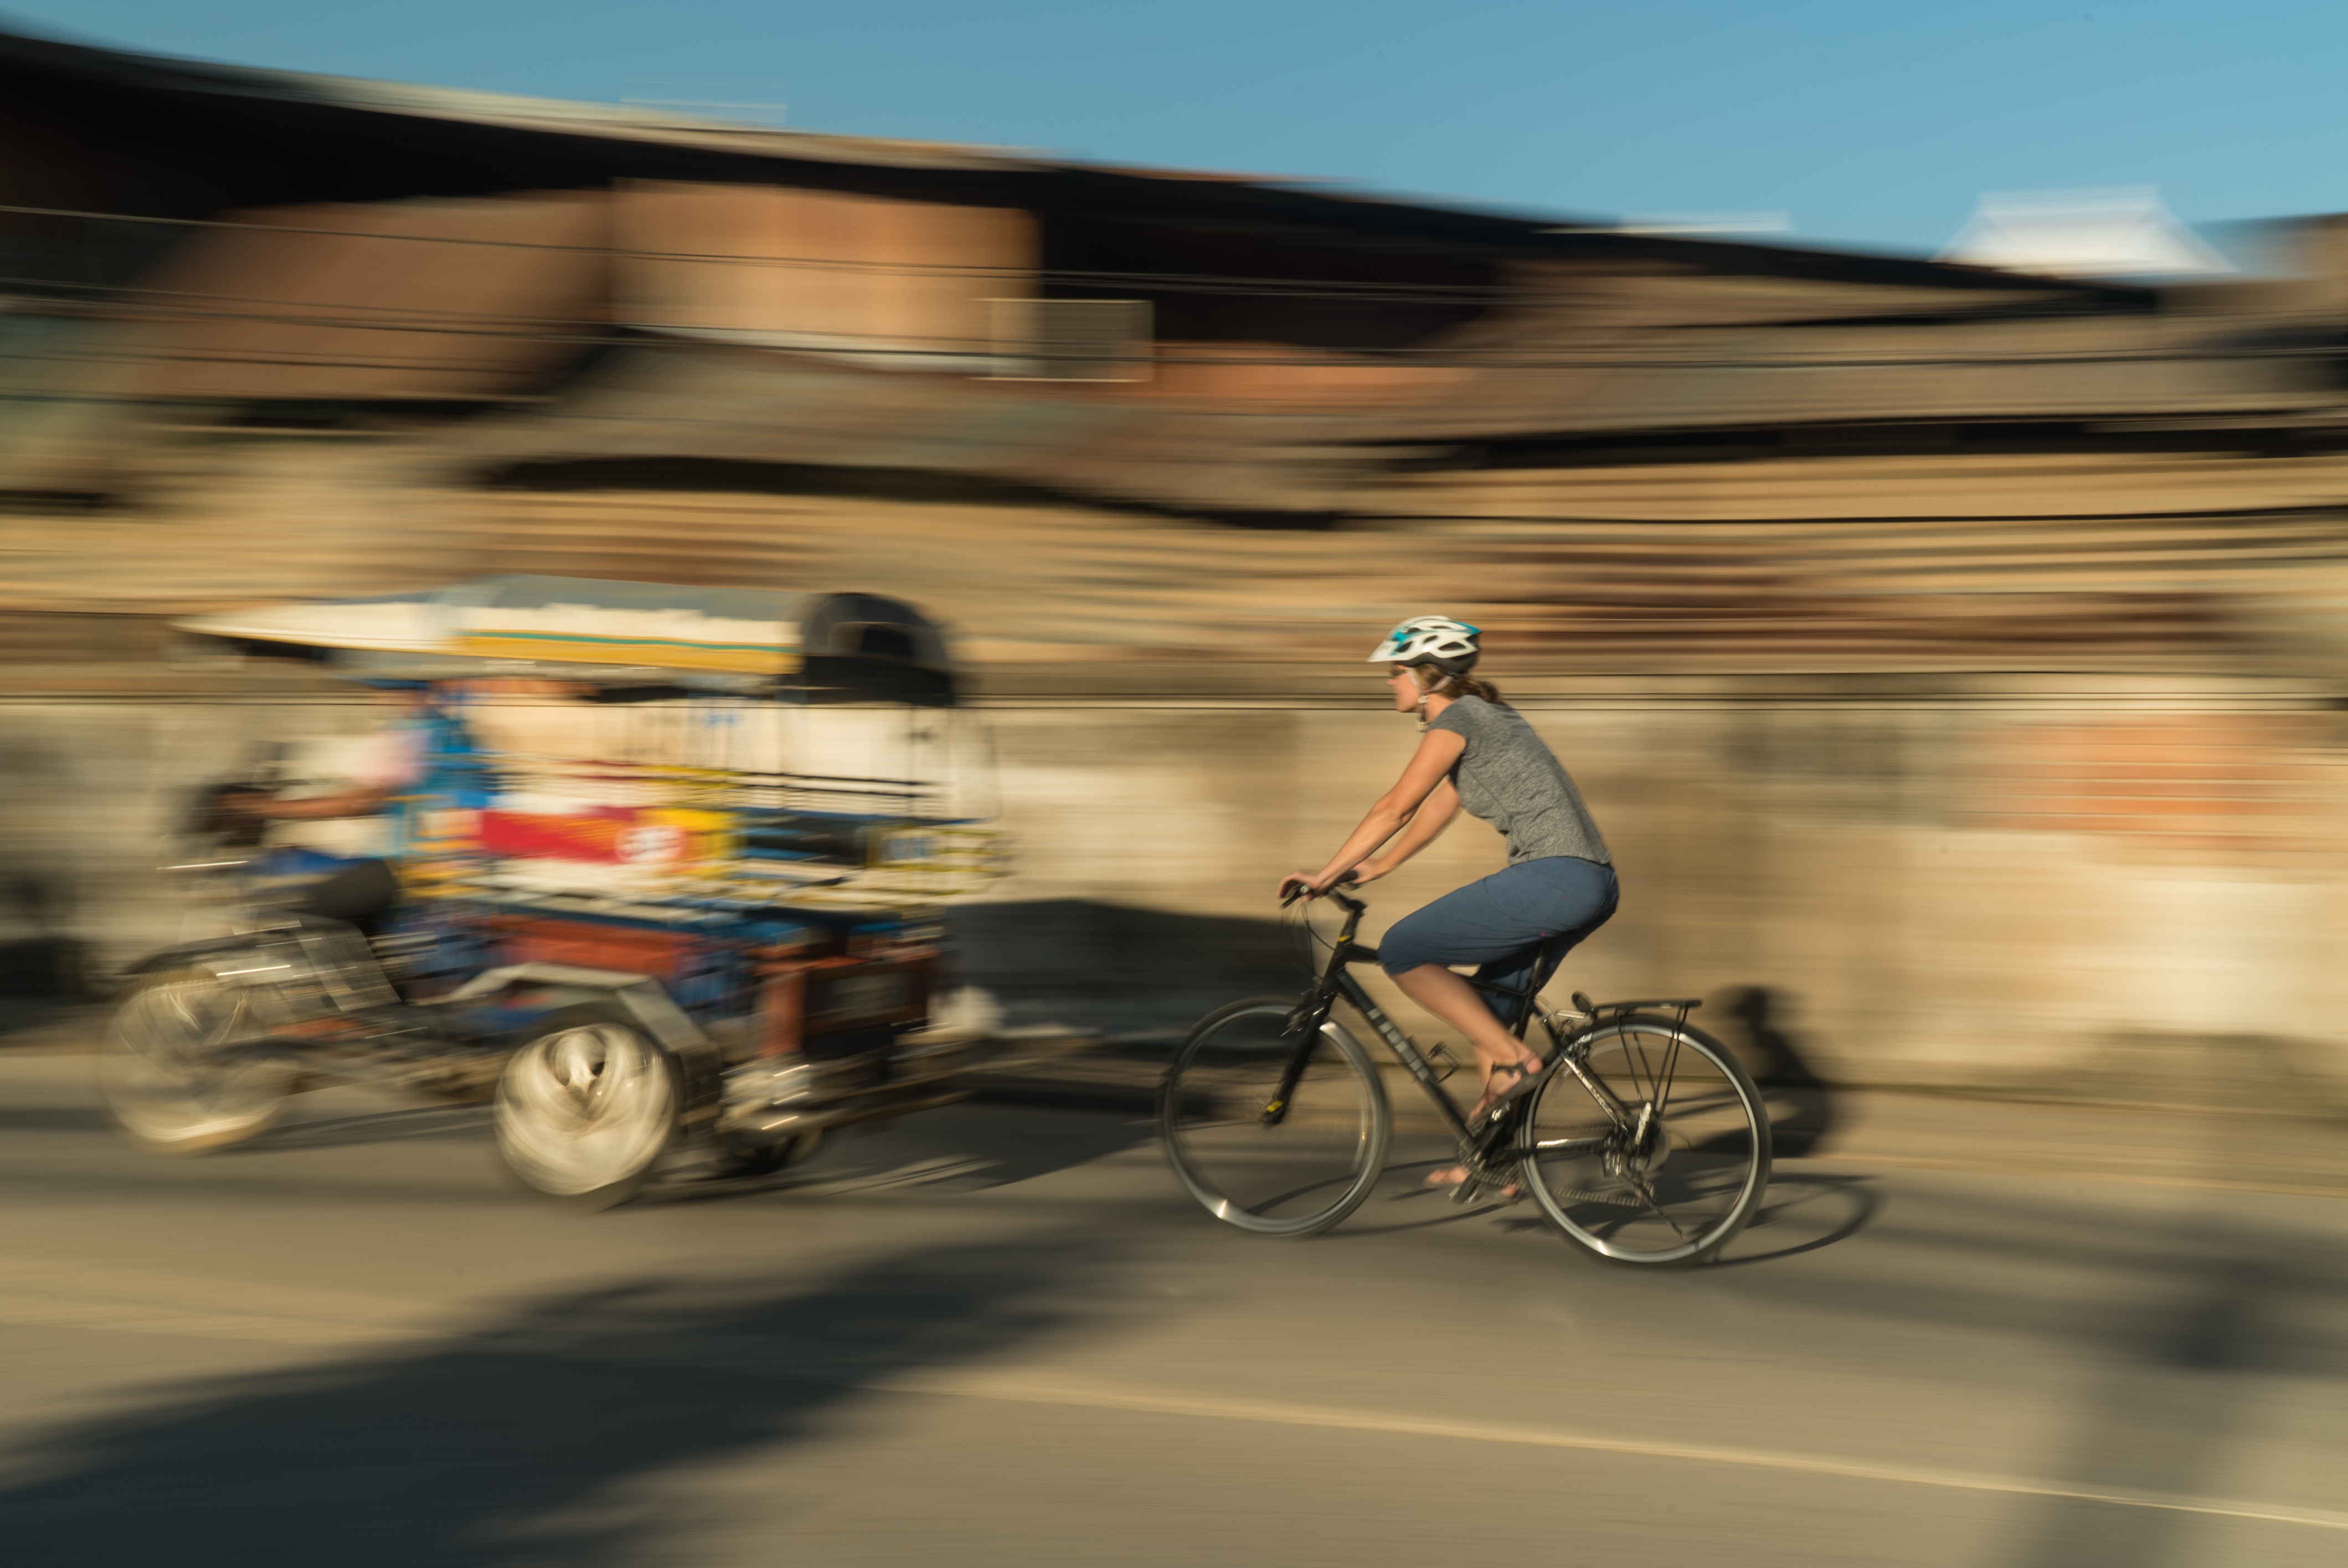 laos-cycling-biking-bike-ride-luang-prabang-city-tuk-tuk-taxi-southeast-asia-travel-adventure